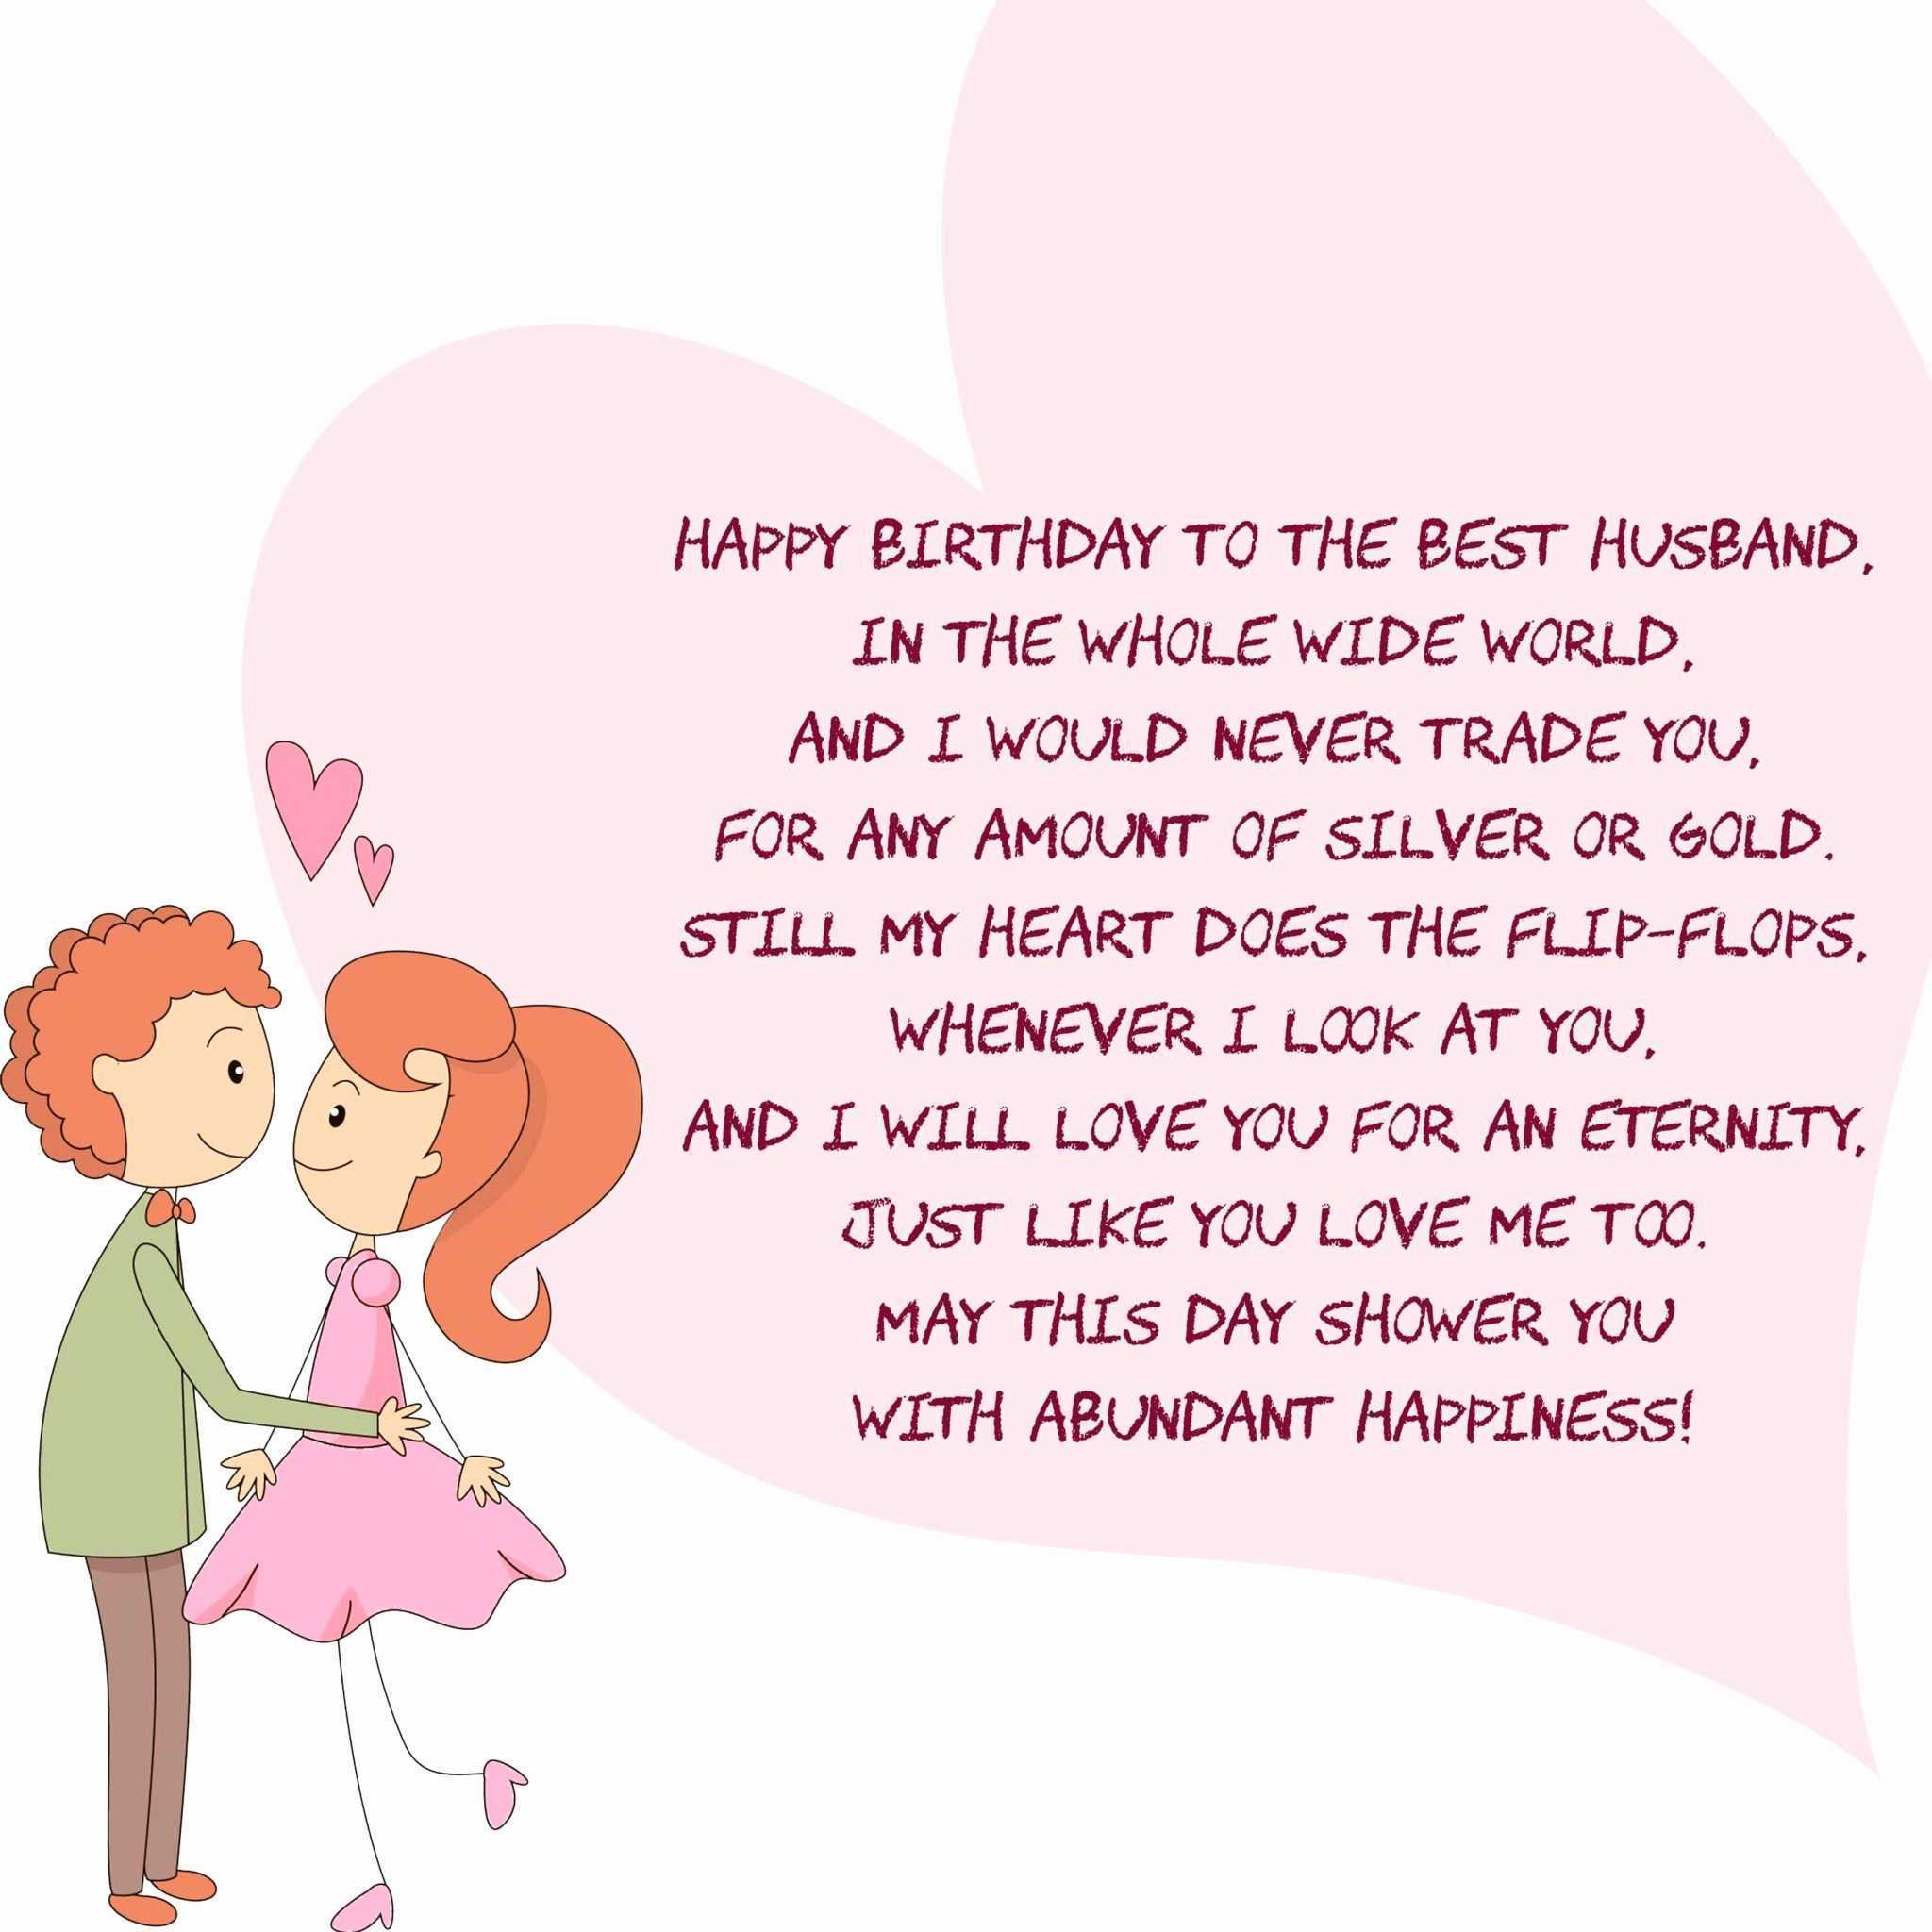 a sweet birthday poem ; sweet-birthday-wishes-for-him-awesome-happy-birthday-poems-for-him-or-her-boyfriend-or-girlfriend-of-sweet-birthday-wishes-for-him